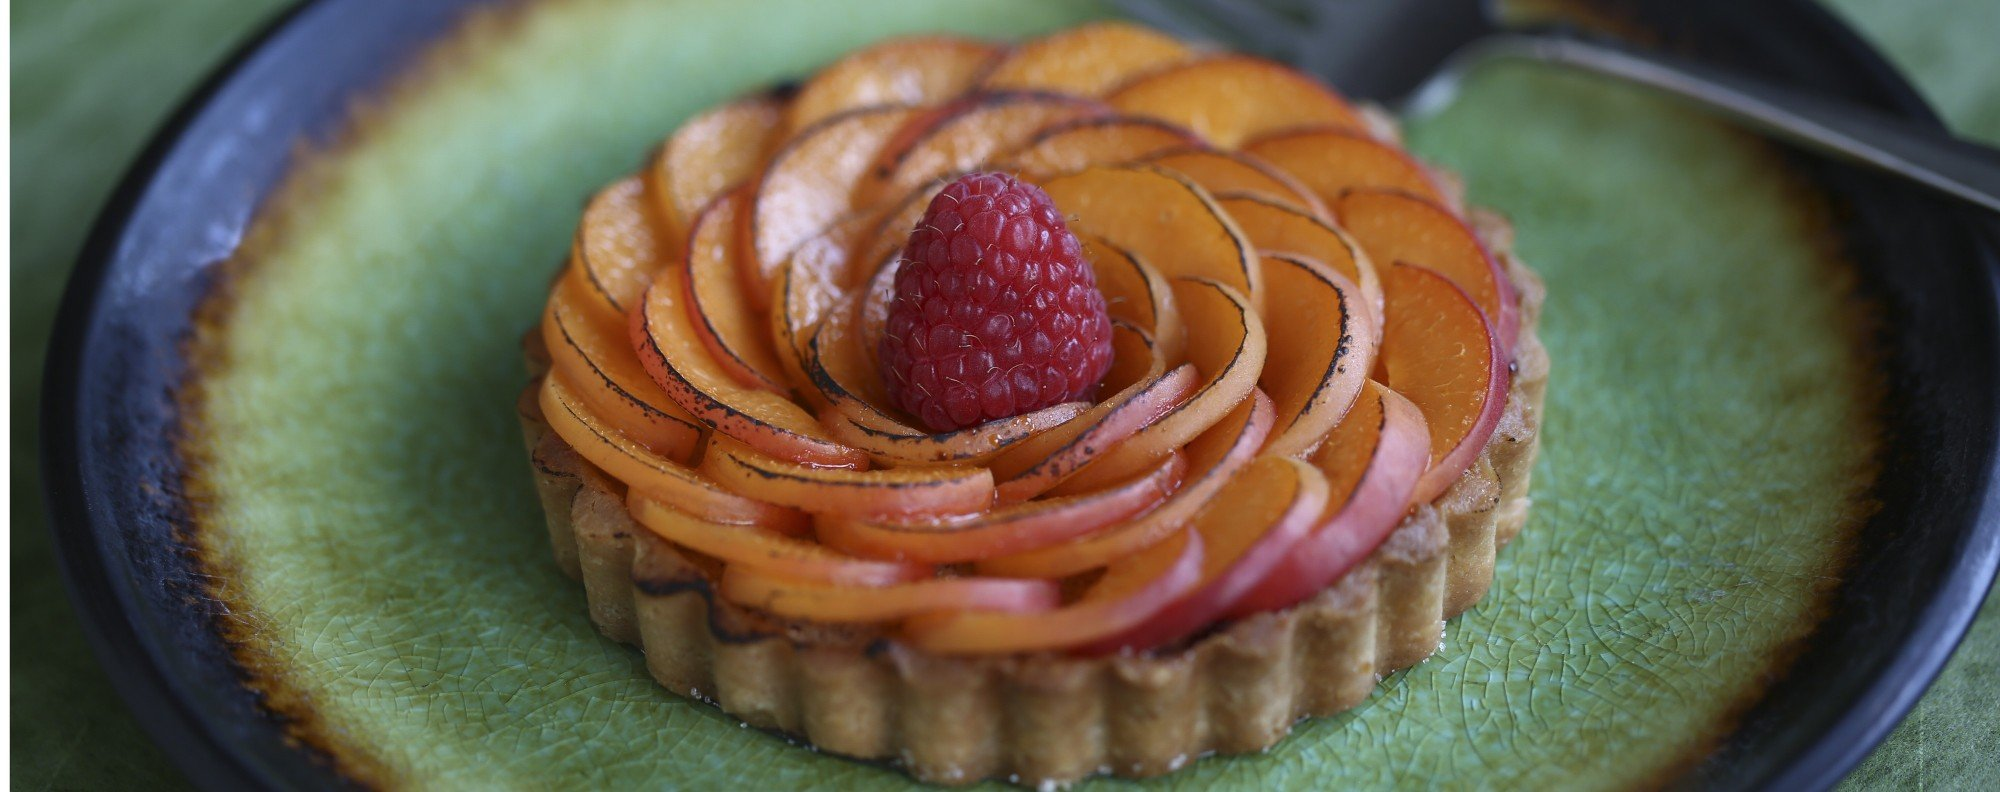 Apricot and raspberry tarts with almond filling. Photography: Jonathan Wong